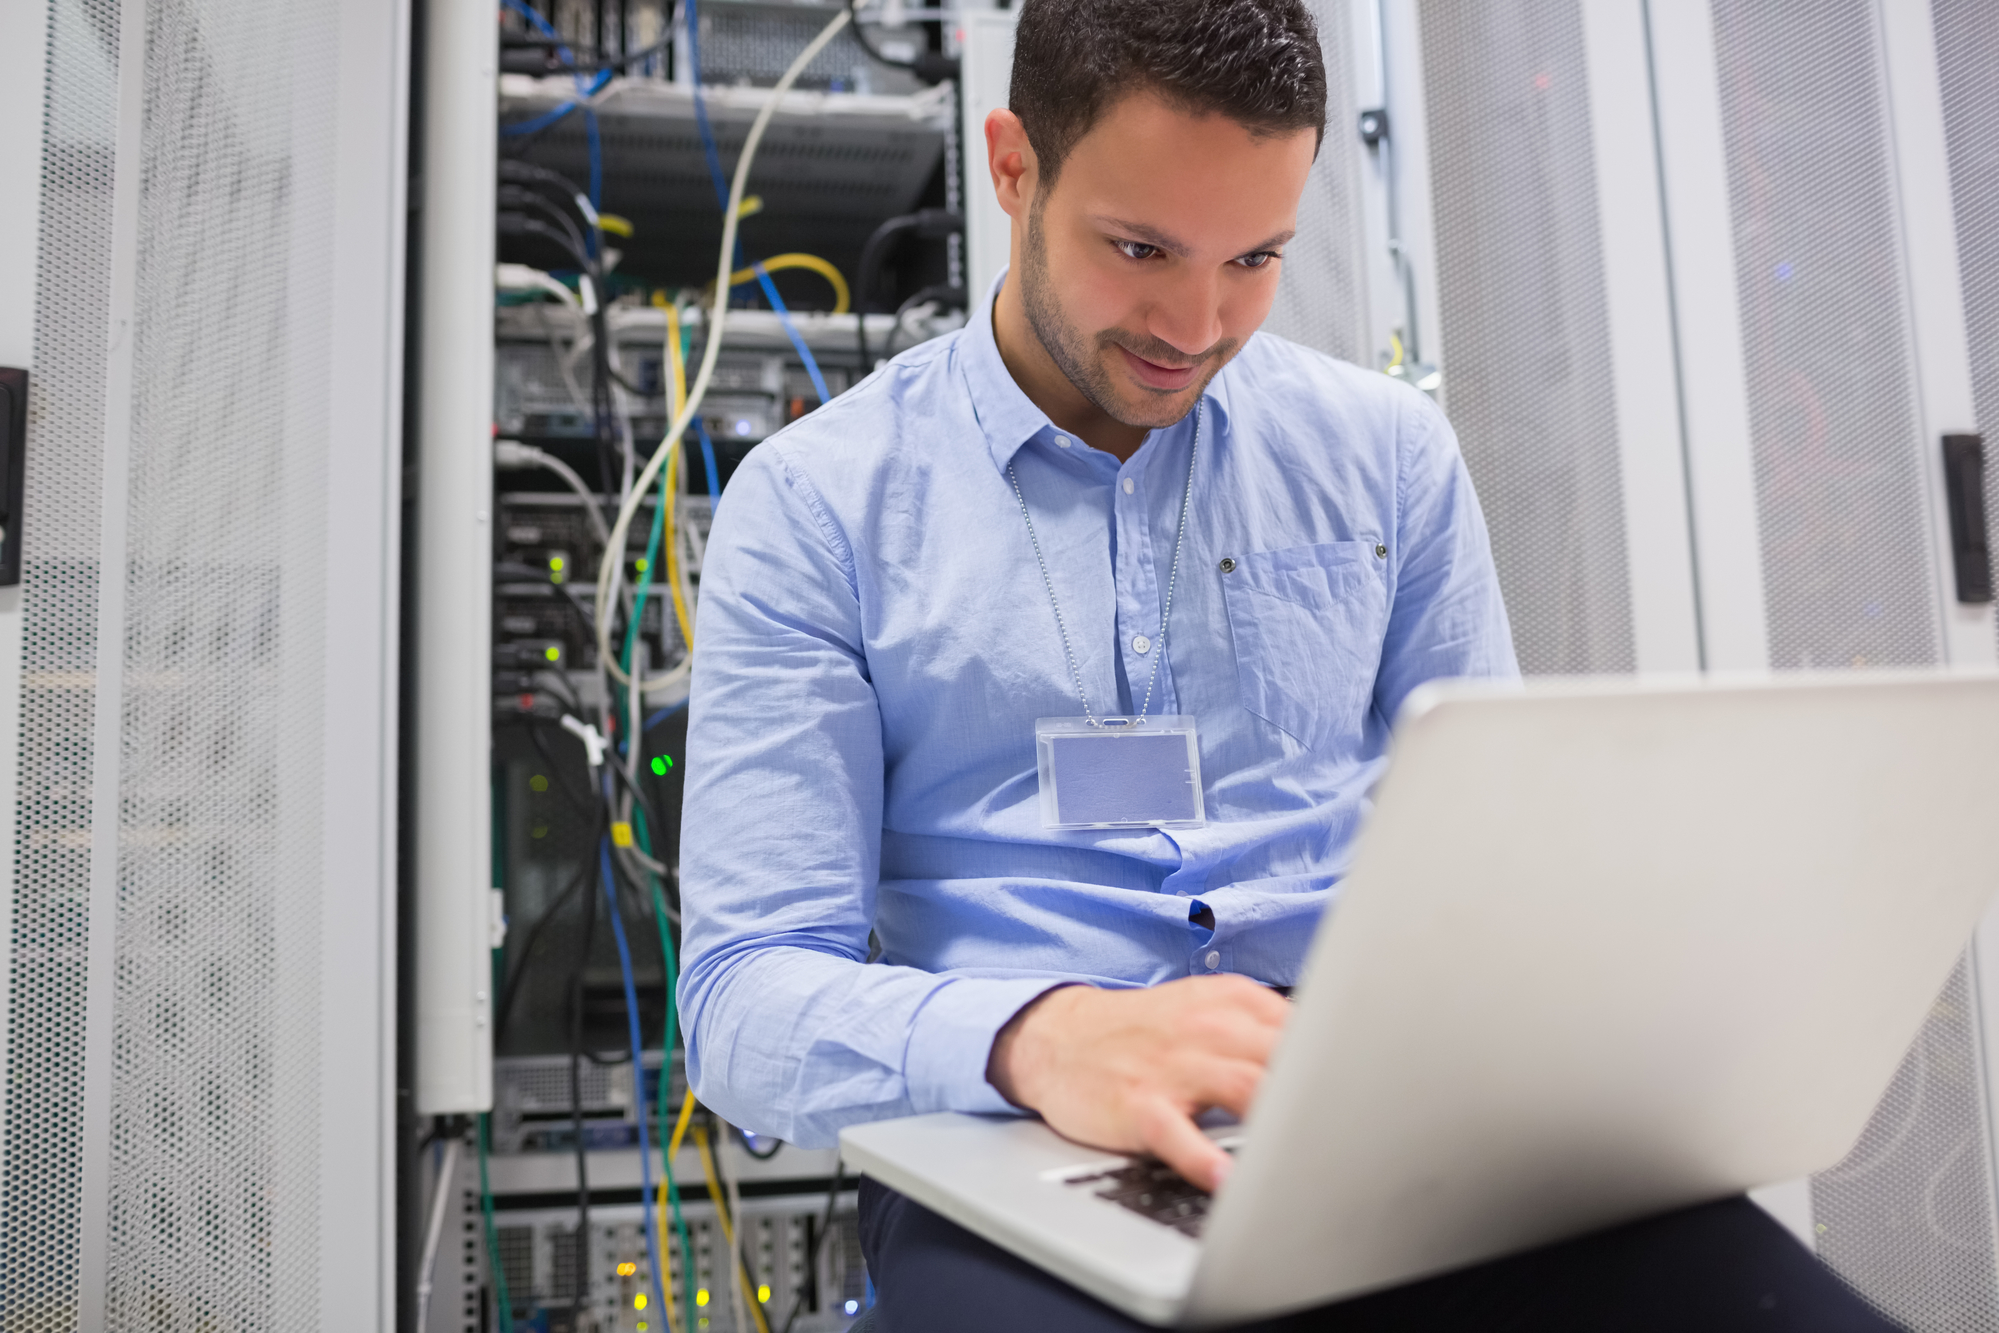 Man using laptop to check servers in data center